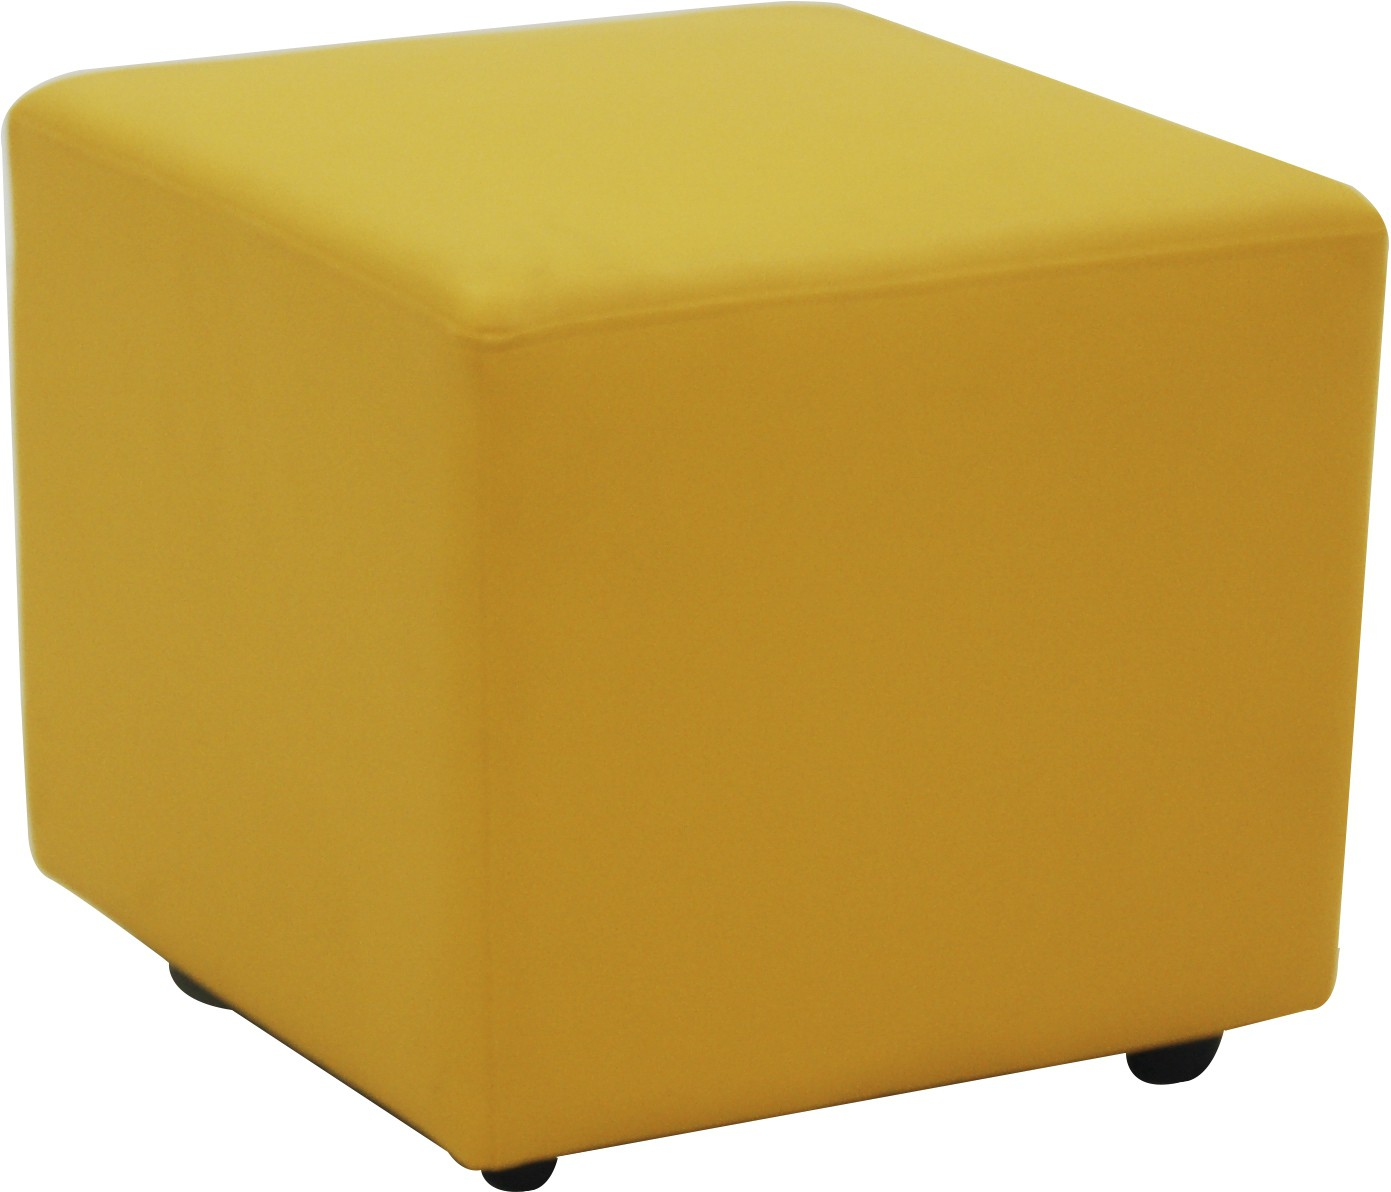 View Furnitech Engineered Wood Standard Ottoman(Finish Color - Yellow) Furniture (Furnitech)